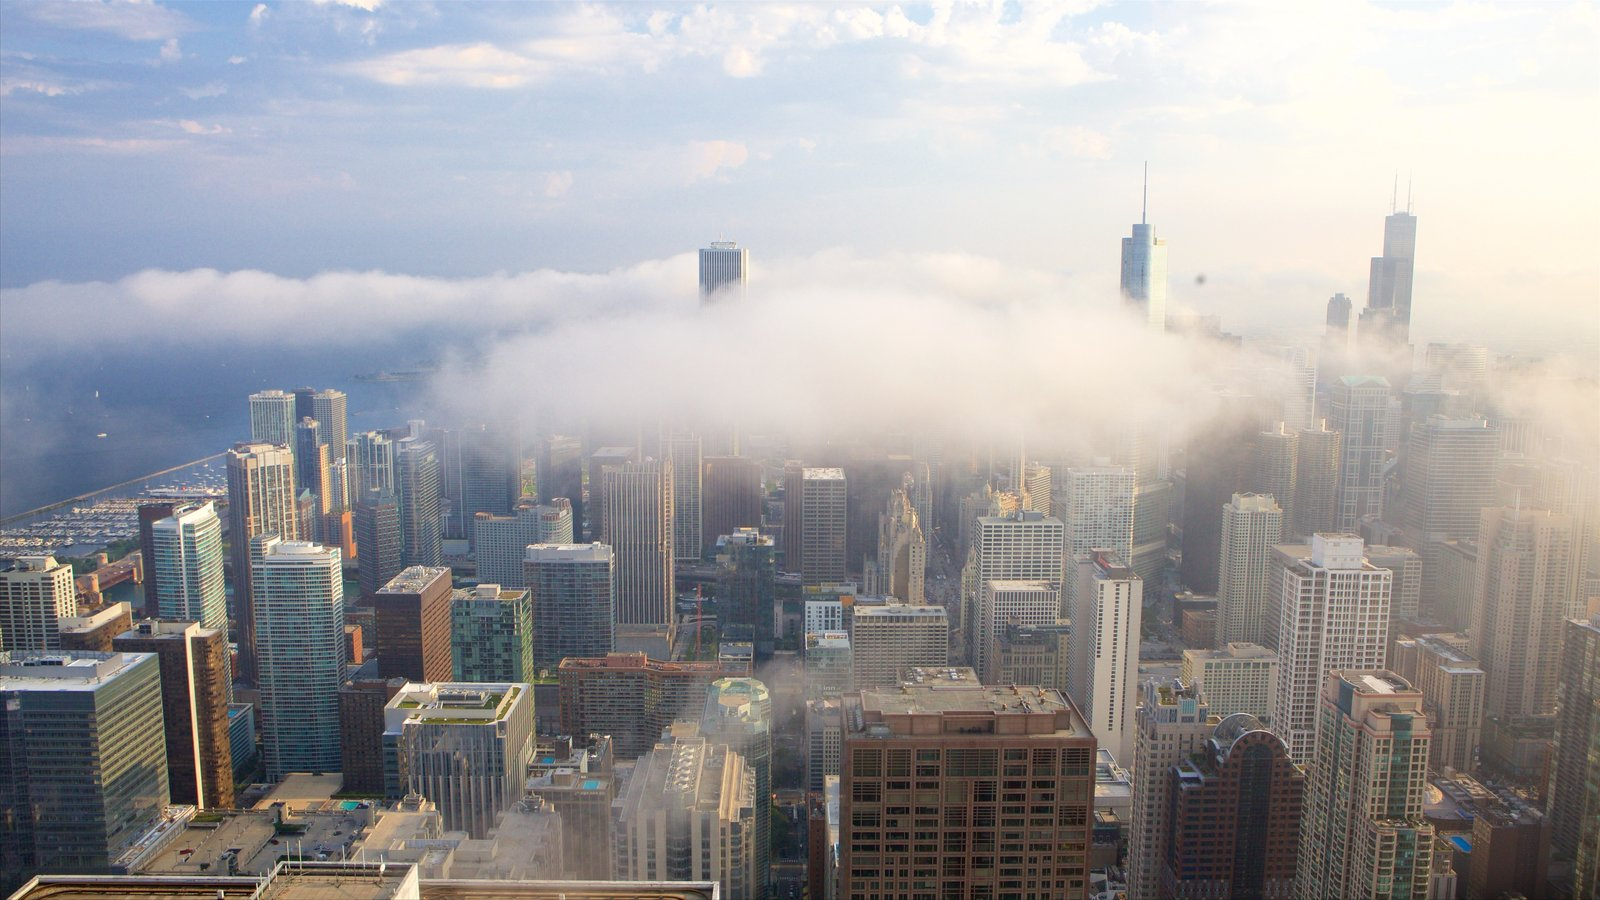 Willis Tower showing a high rise building, mist or fog and cbd